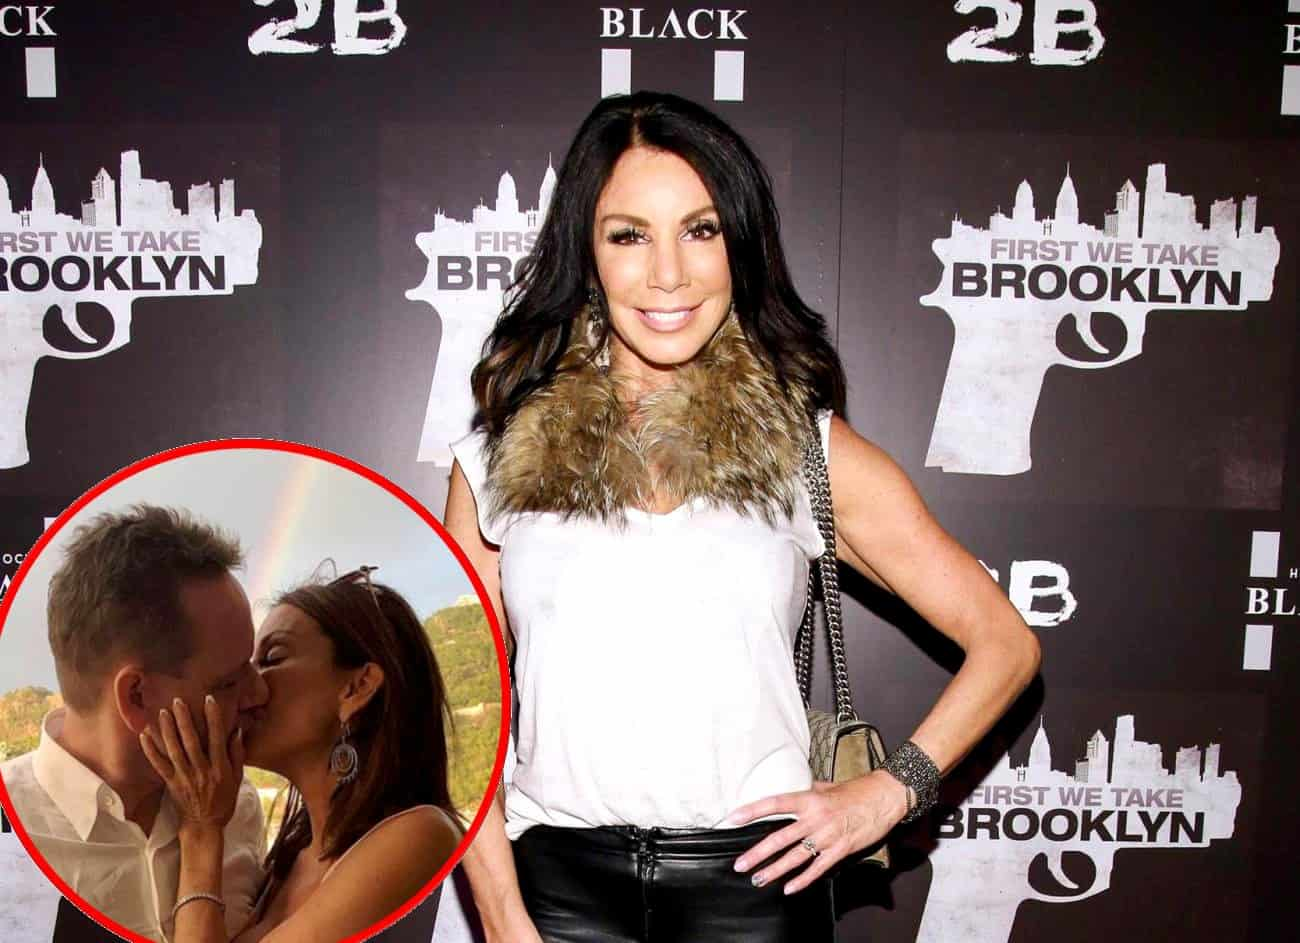 RHONJ Star Danielle Staub's Fiancé Oliver Maier Got 'Blackout Drunk' and Nearly Drowned